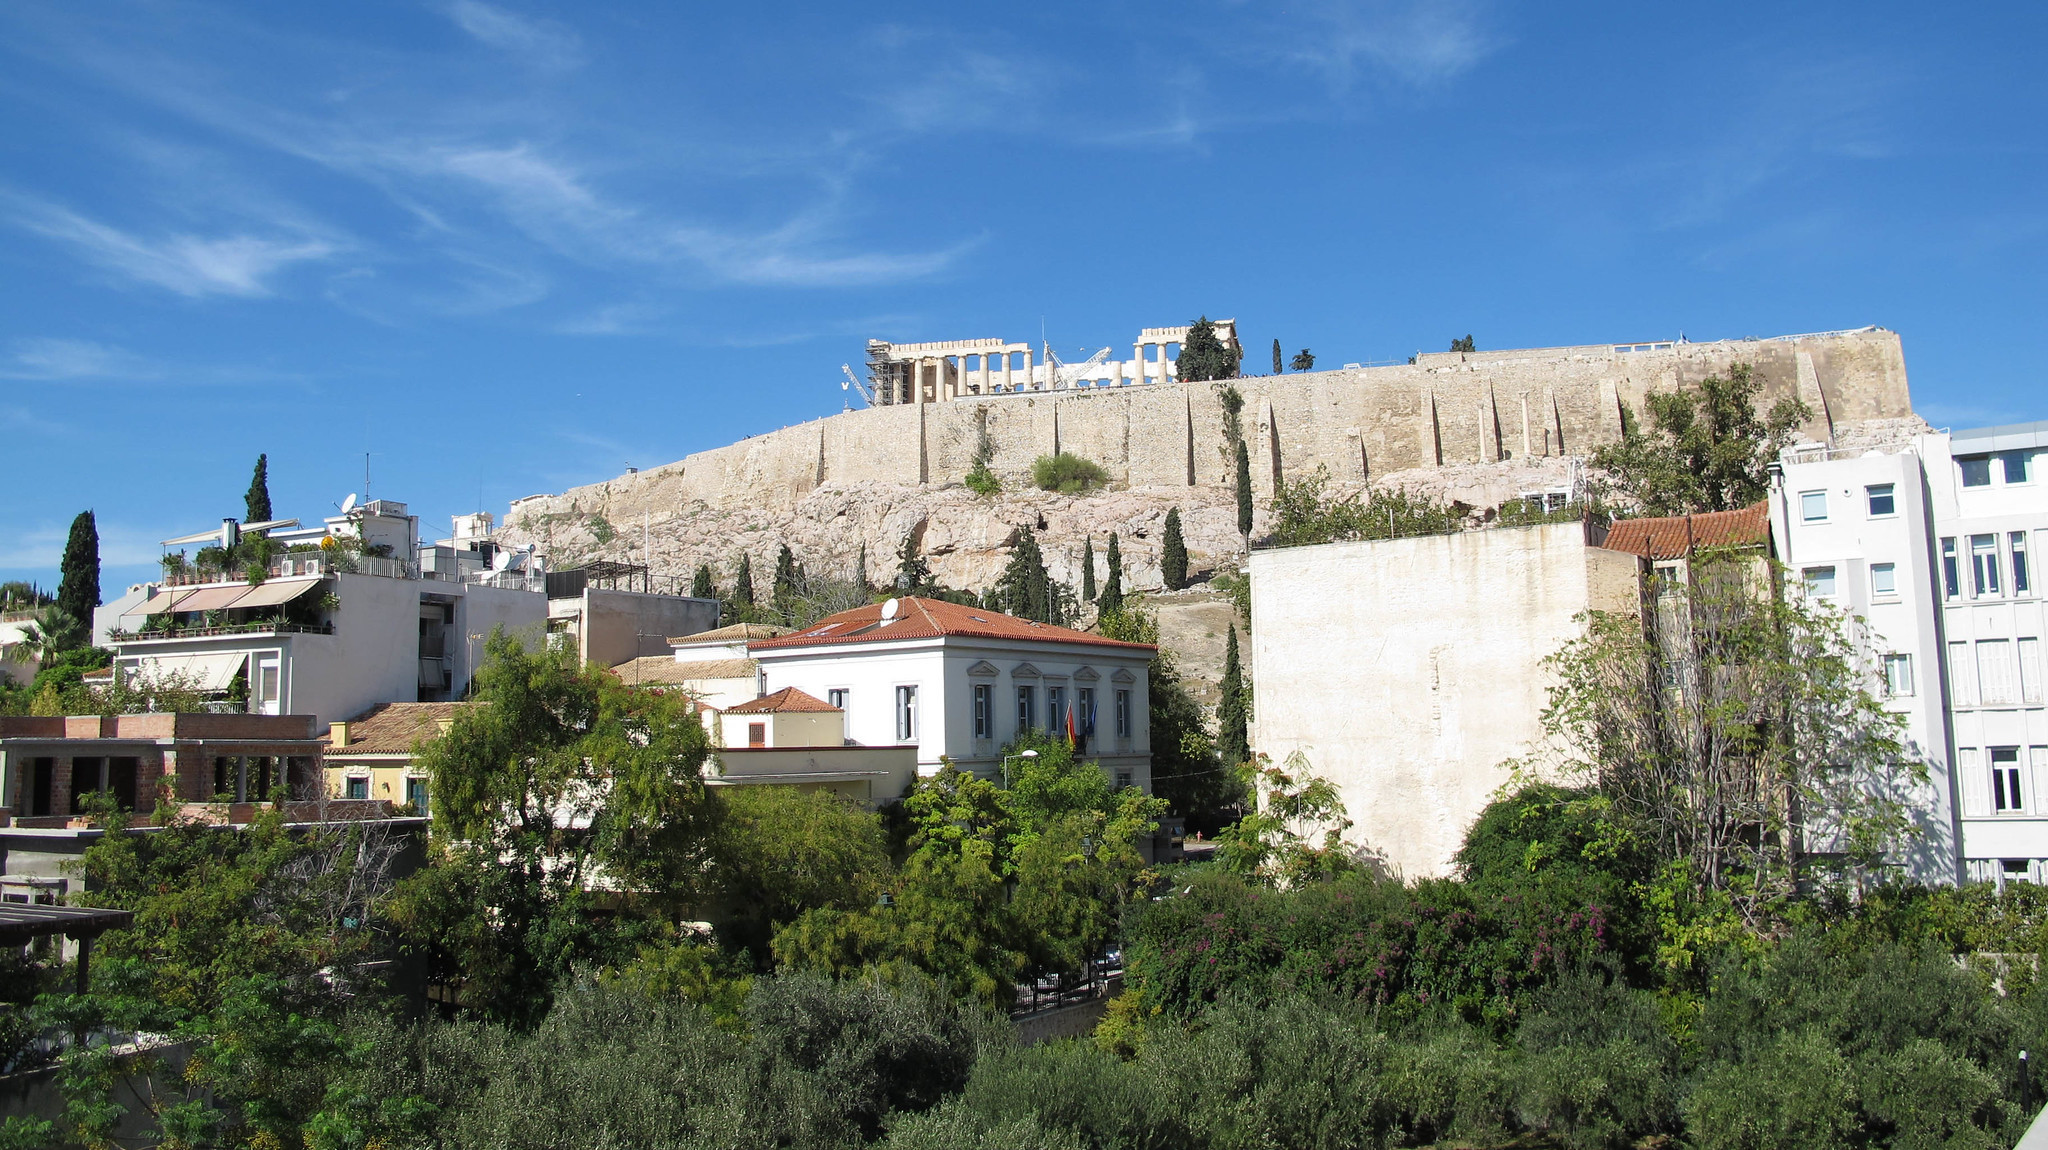 a view of the Acropolis in Athens on a sunny day